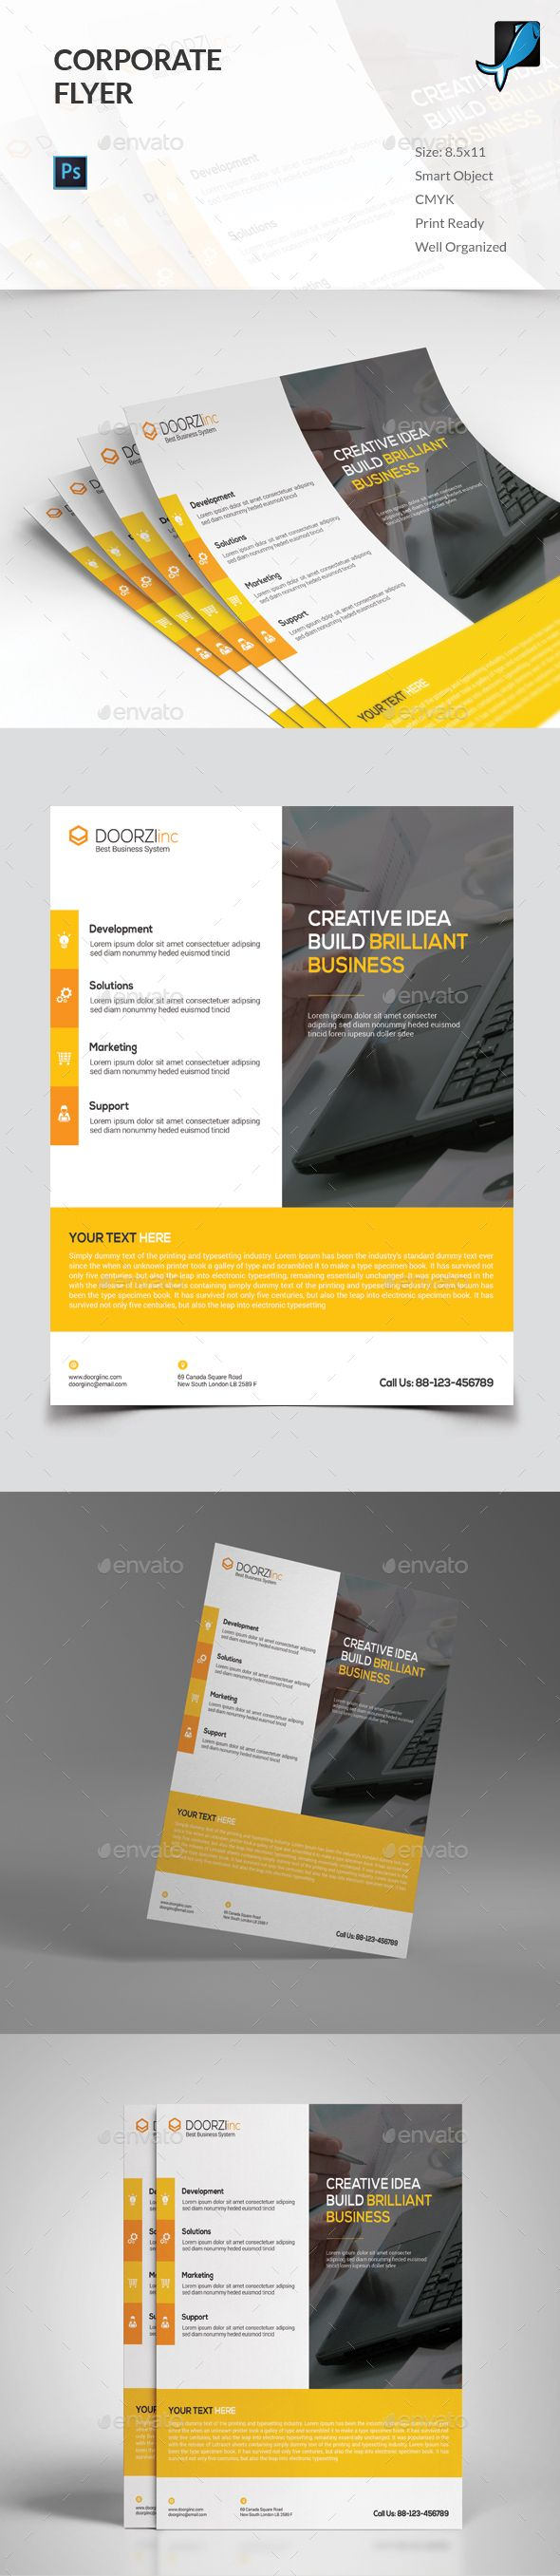 Corporate Flyer Template PSD #design Download: http://graphicriver.net/item/corporate-flyer/13485139?ref=ksioks